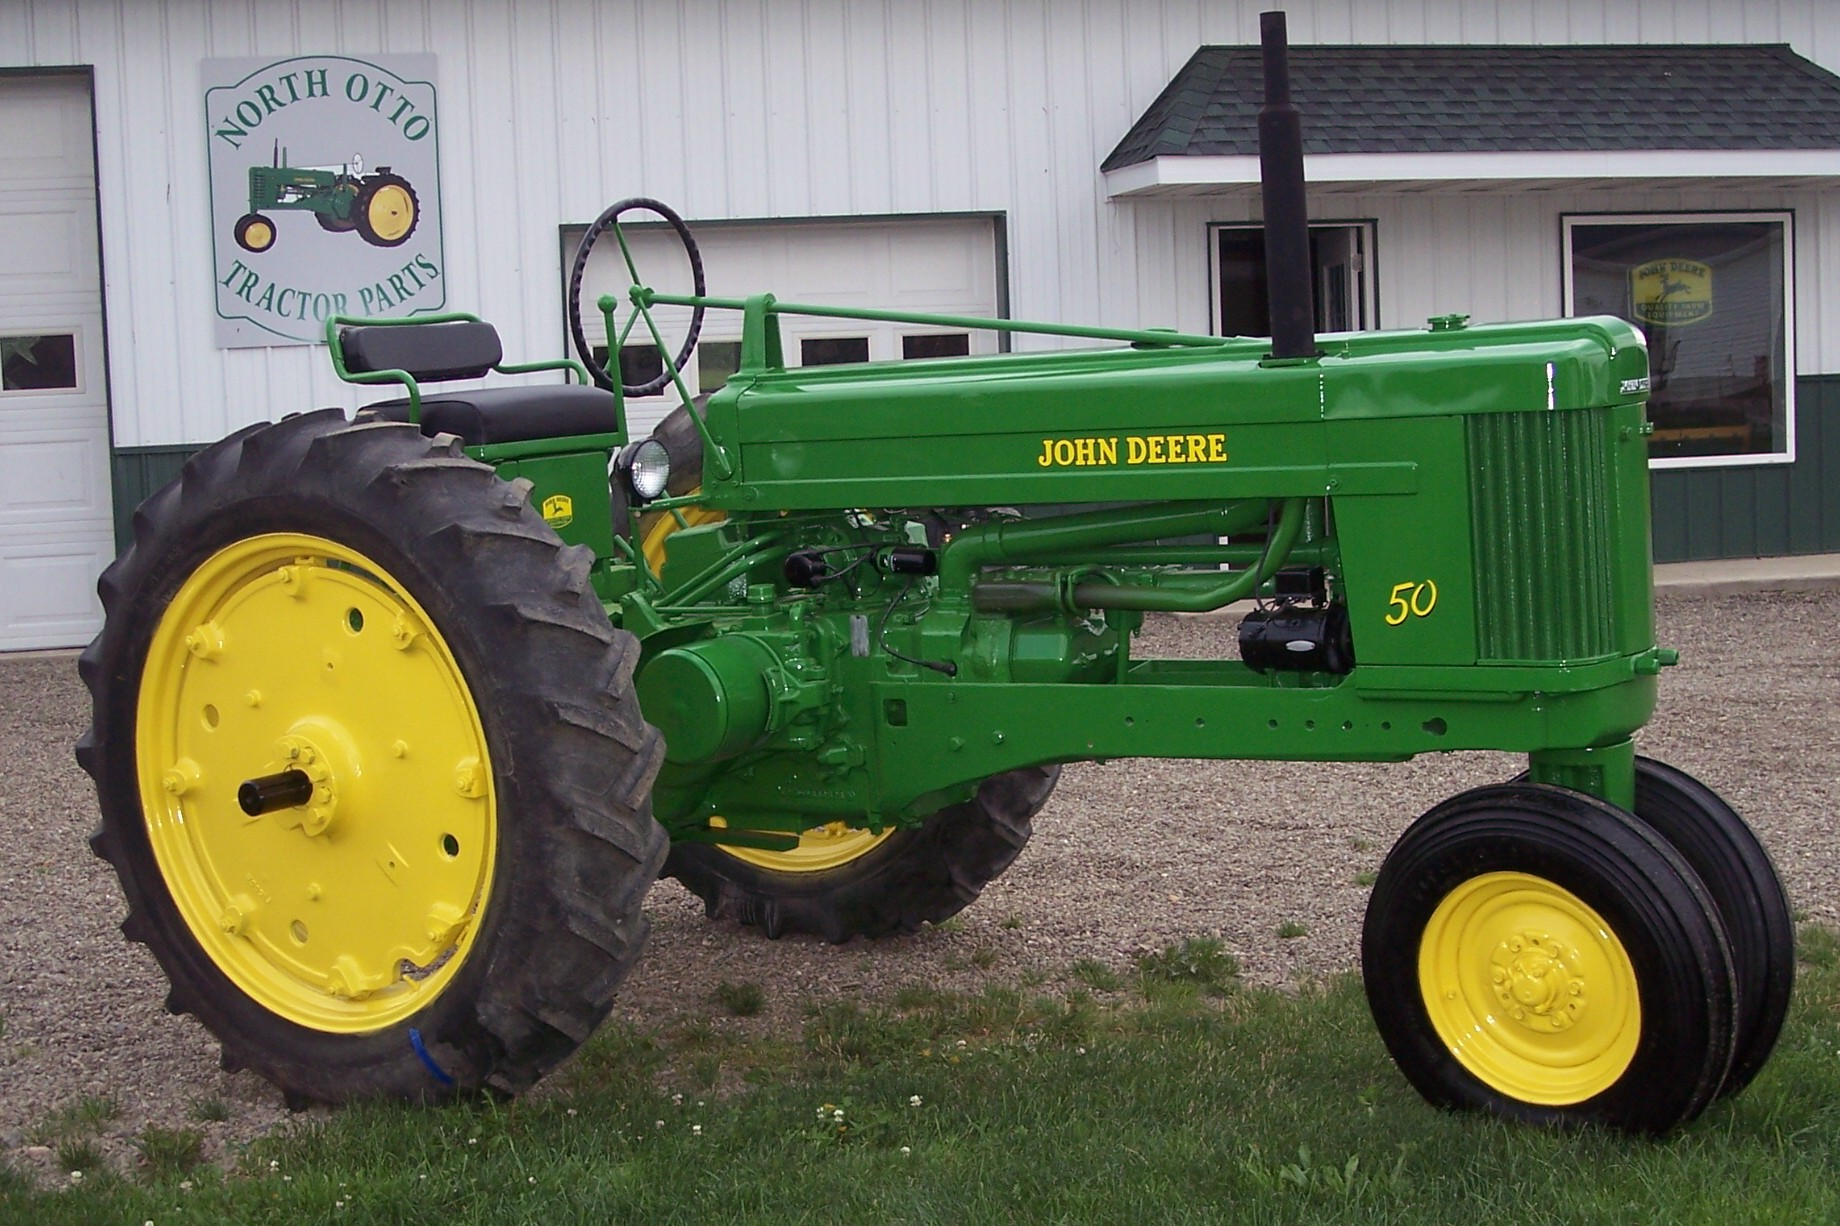 John Deere 50 | North Otto Tractor Parts